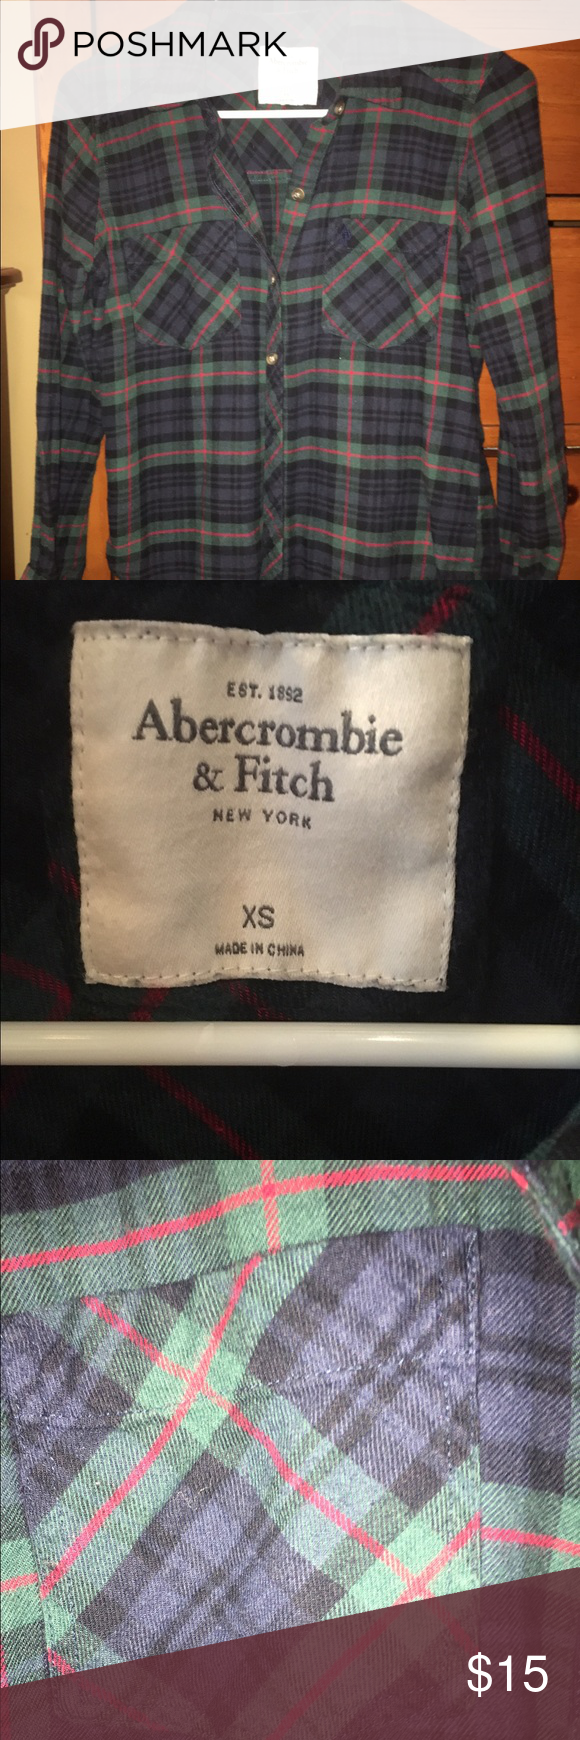 Abercrombie &Fitch Flannel shirt Abercrombie & Fitch Women's Flannel shirt.  Size XS.  Very pretty soft material.  I tried to take a pic up close so you can see the colors in the plaid.  Perfect condition. Abercrombie & Fitch Tops Button Down Shirts